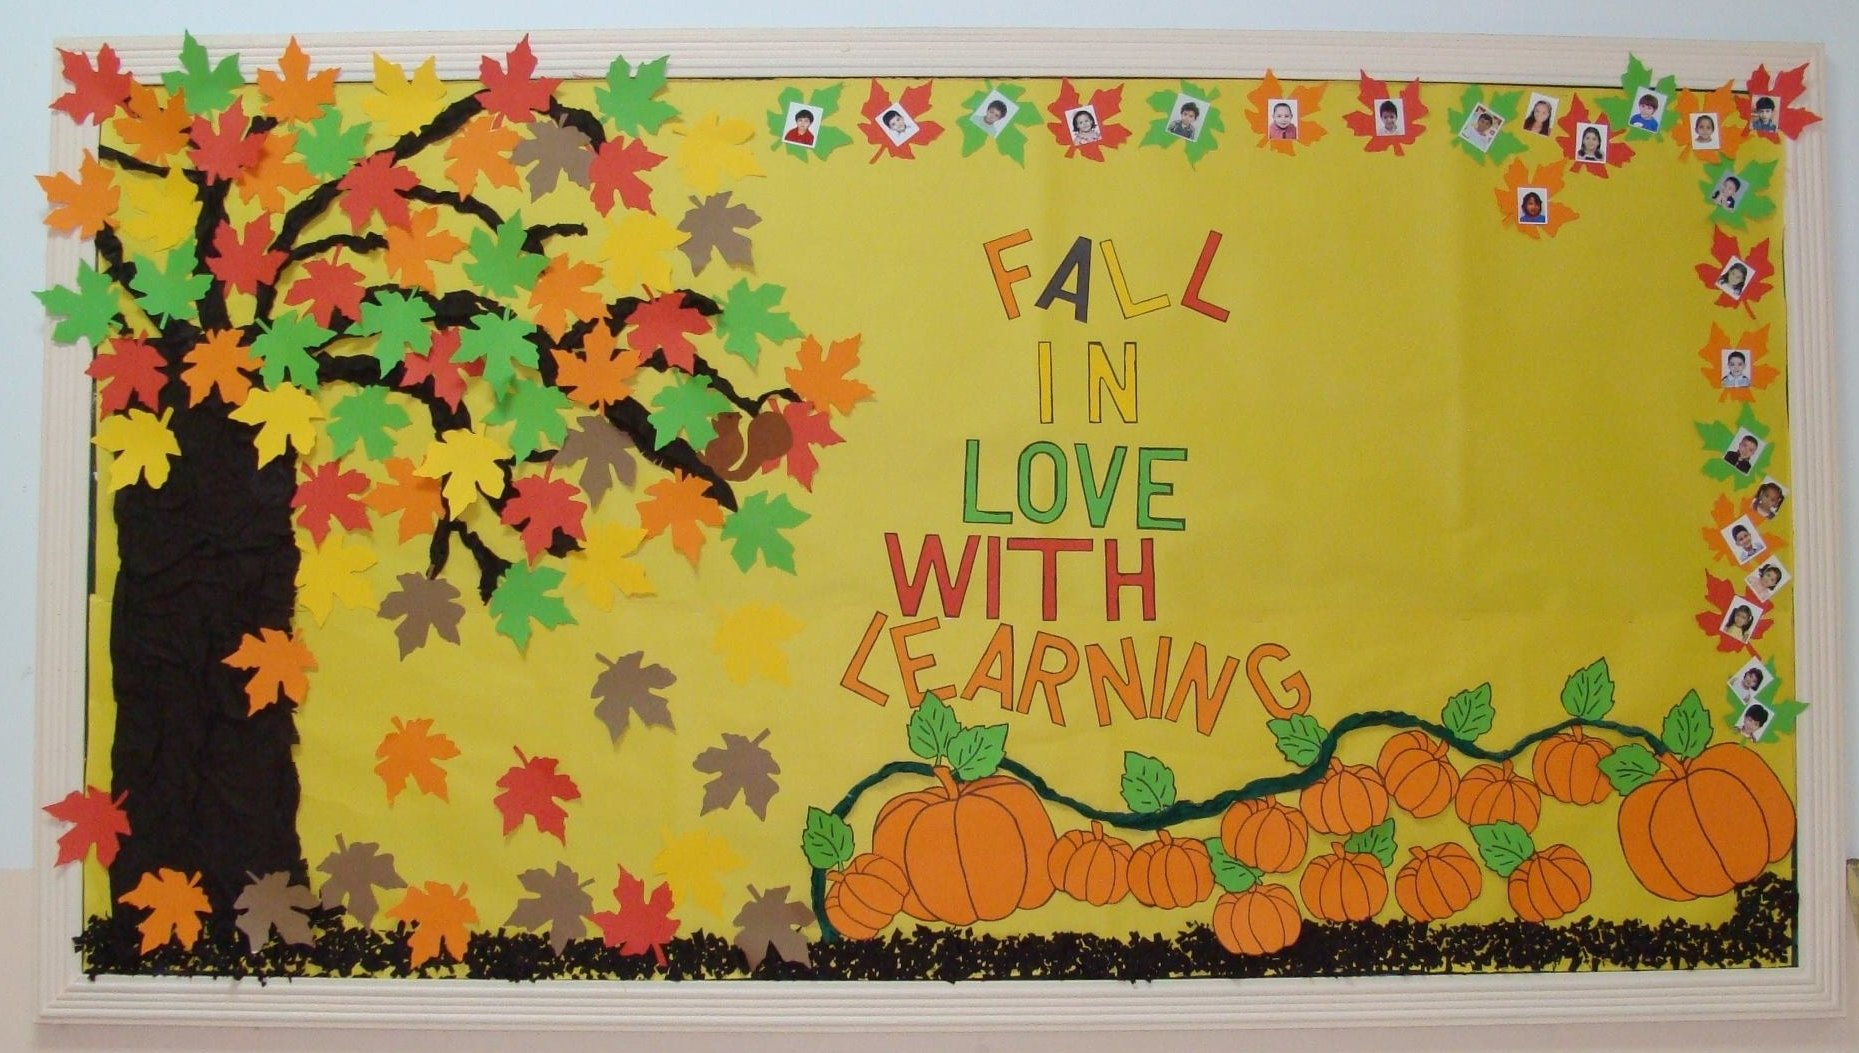 10 Unique Bulletin Board Ideas For Fall fall in love with learning fall bulletin board idea supplyme 2020